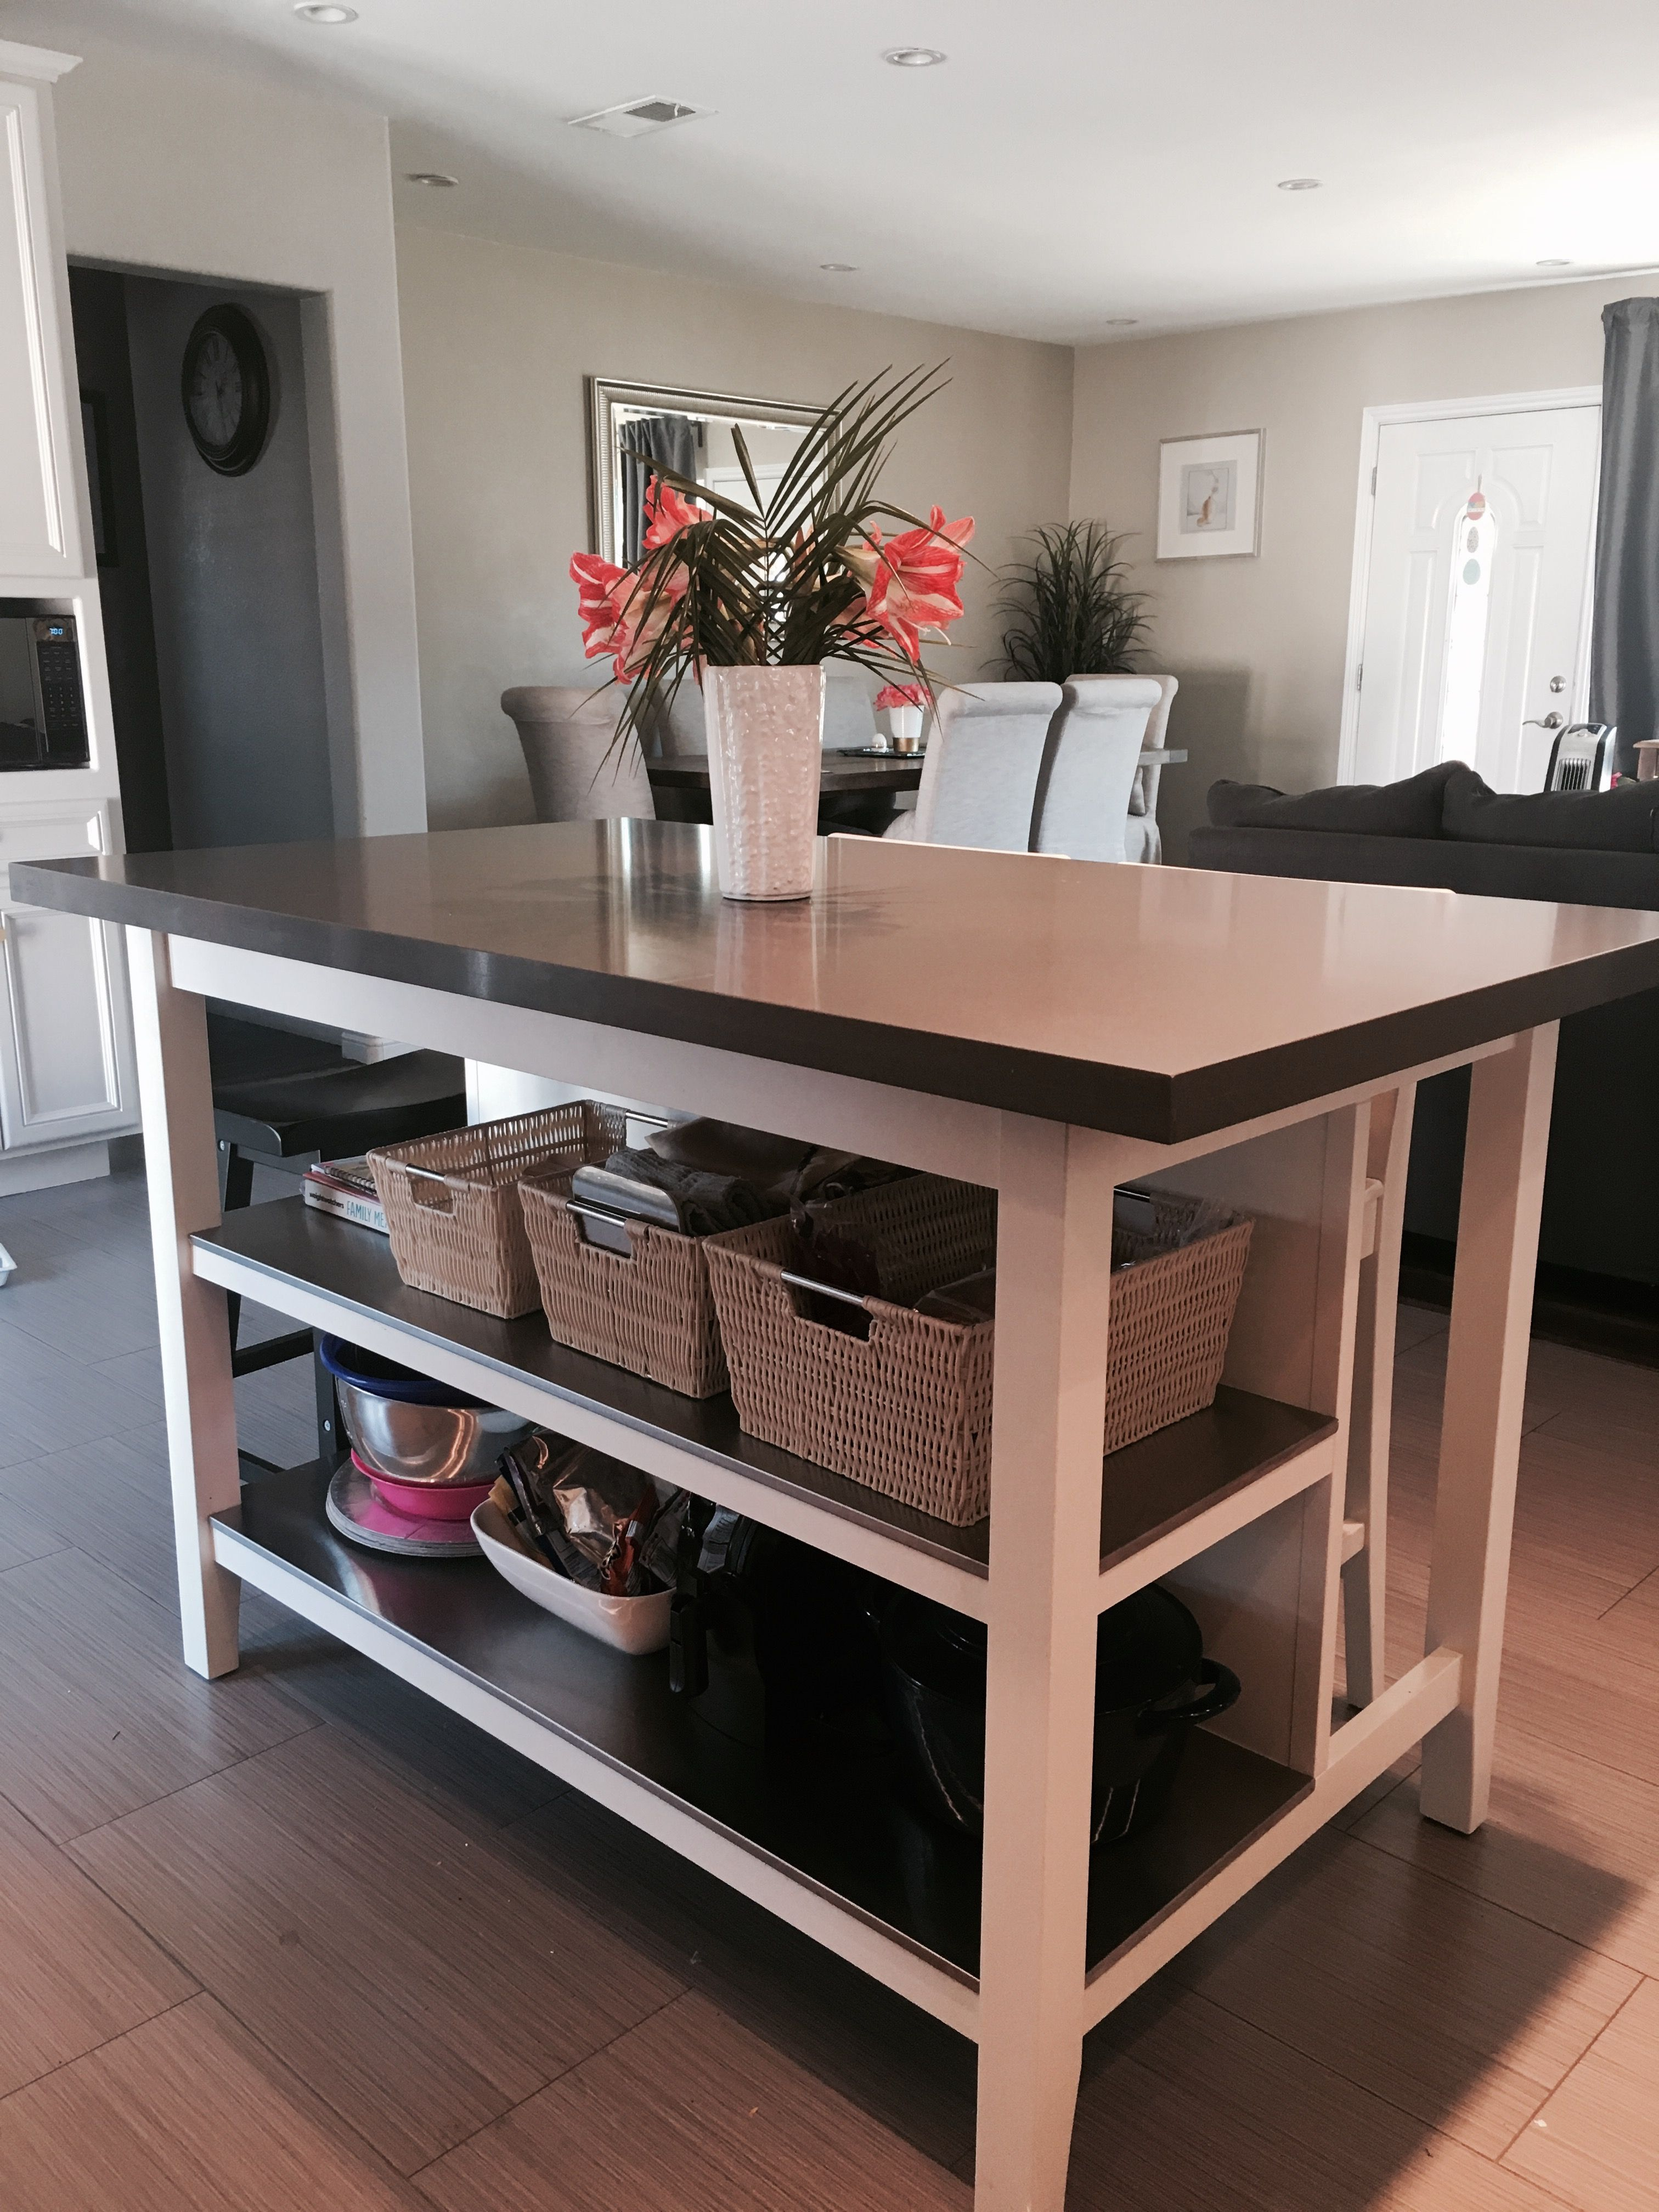 Ikea Stenstorp Kitchen Island Hack. We Loved This Island But Needed A  Larger Counter Space So We Added Quartz On Top. This Saved Us A Ton Of  Money!